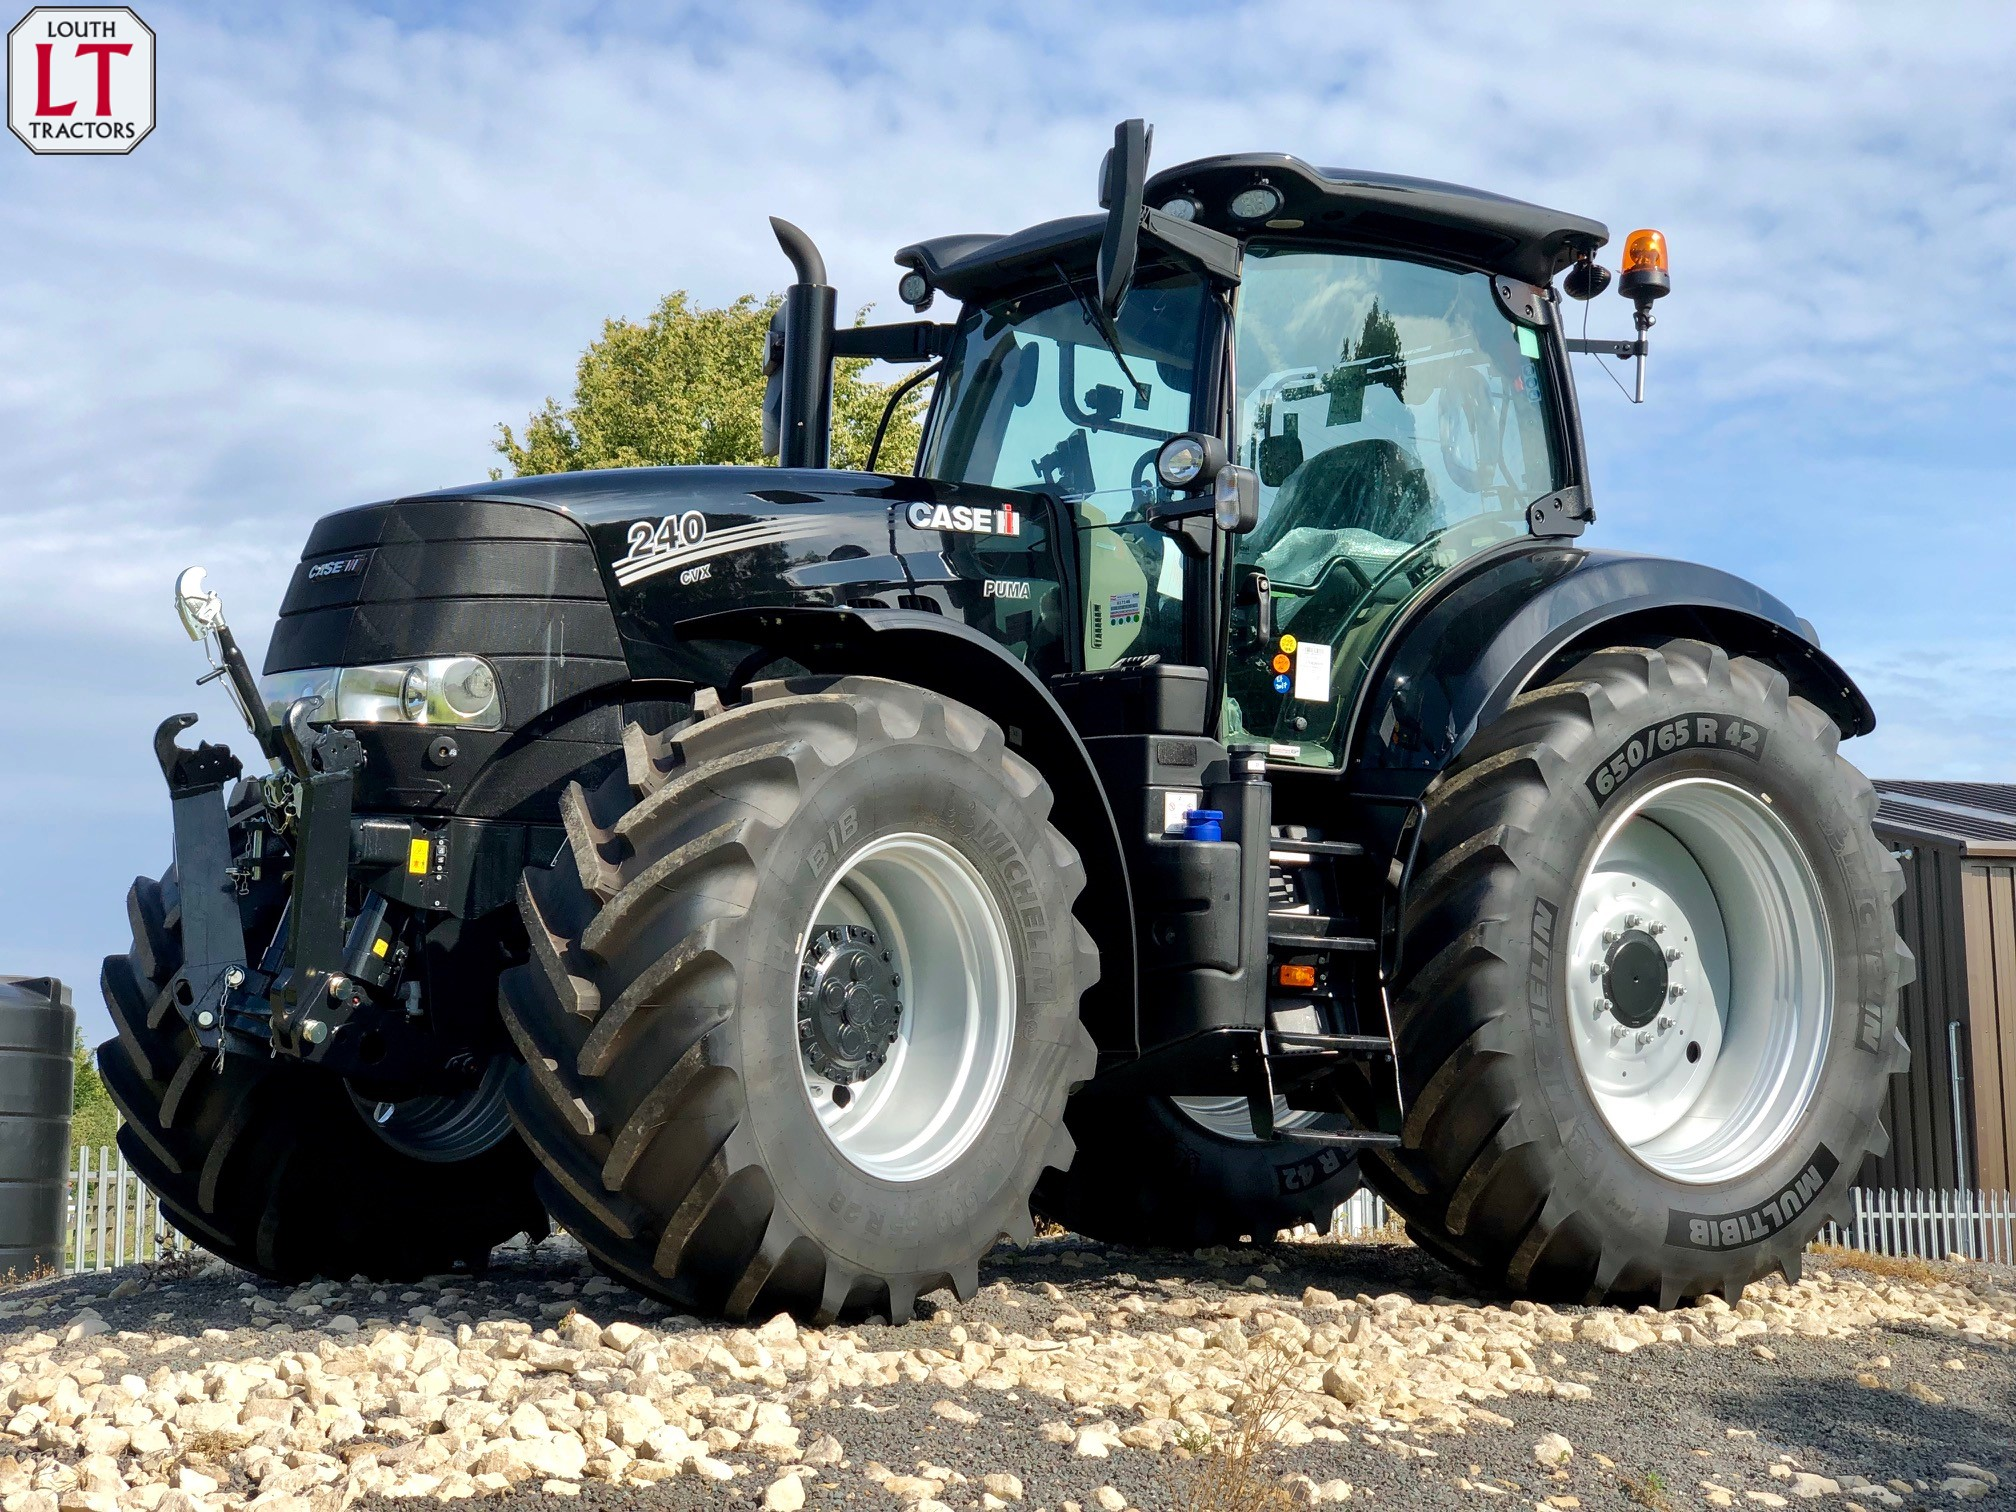 Louth Tractors   Servicing Lincolnshire farmers for over